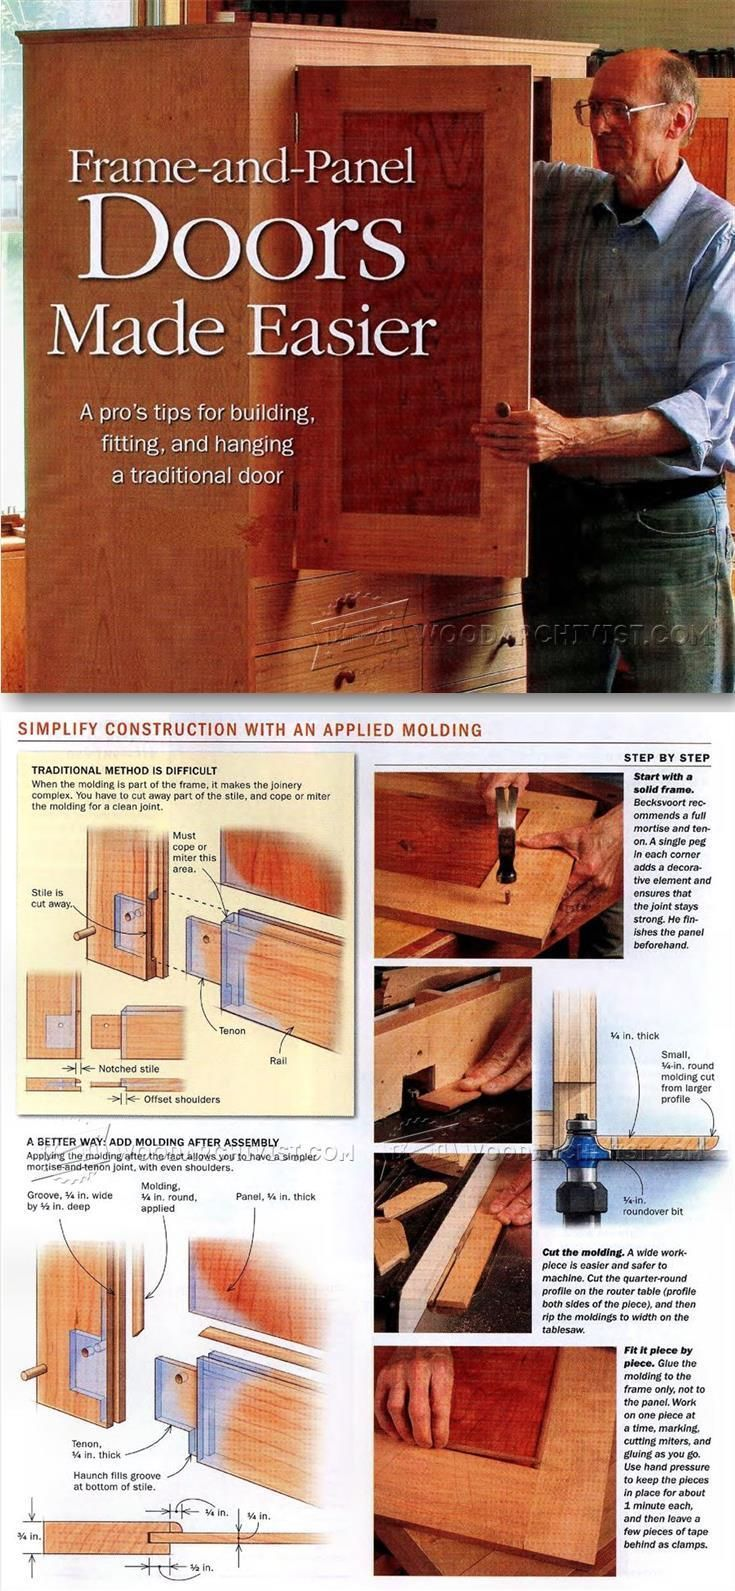 Making Frame and Panel Doors - Cabinet Door Construction Techniques | WoodArchivist.com